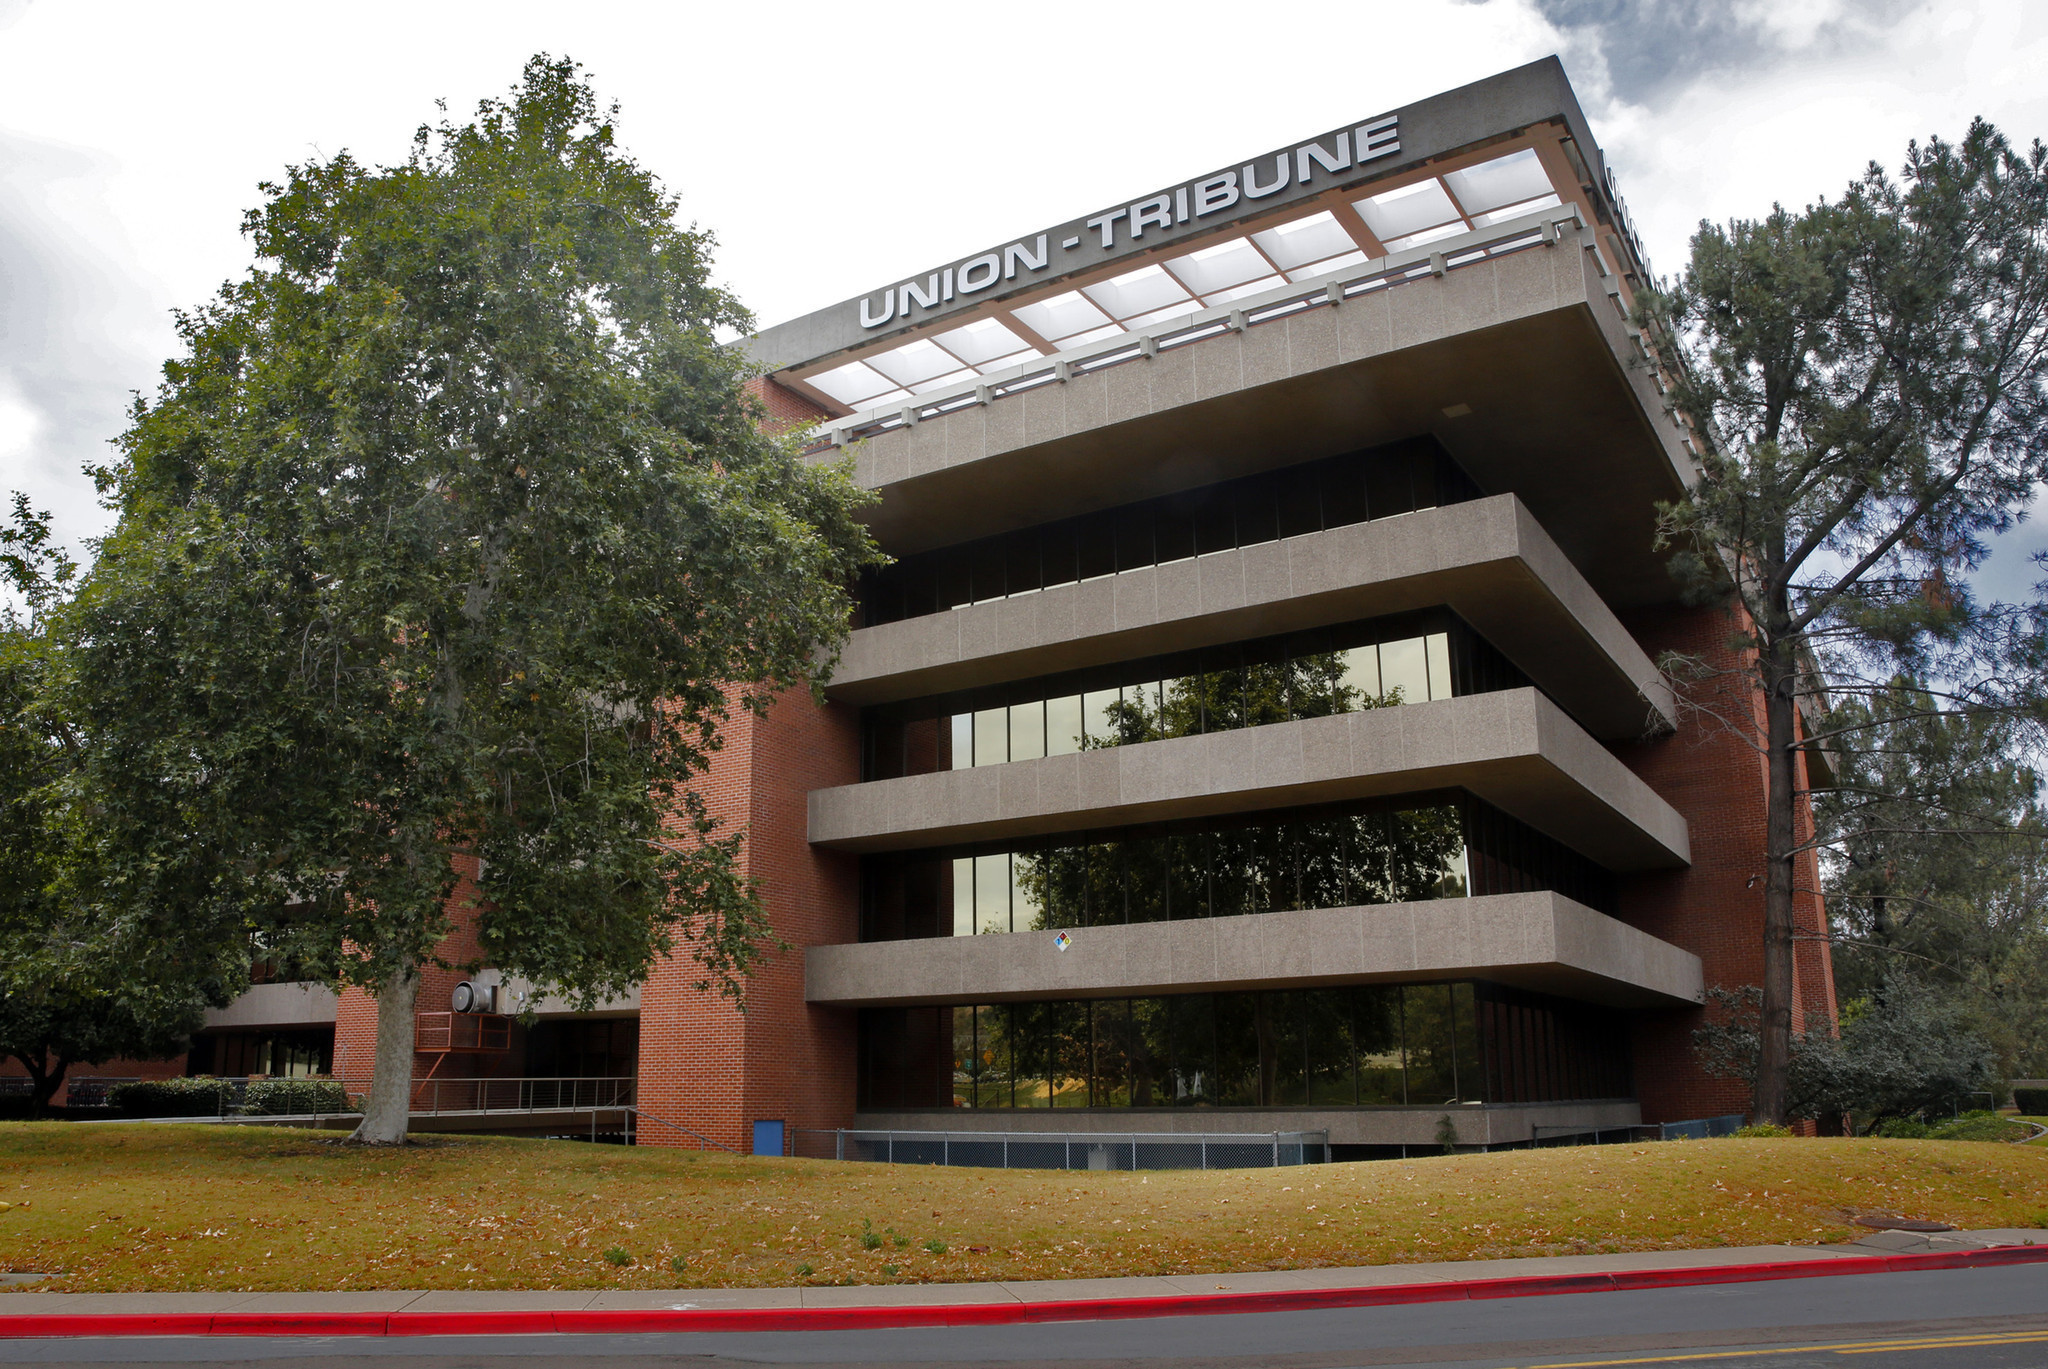 San Diego Union-Tribune lays off 178, mostly in printing, delivery